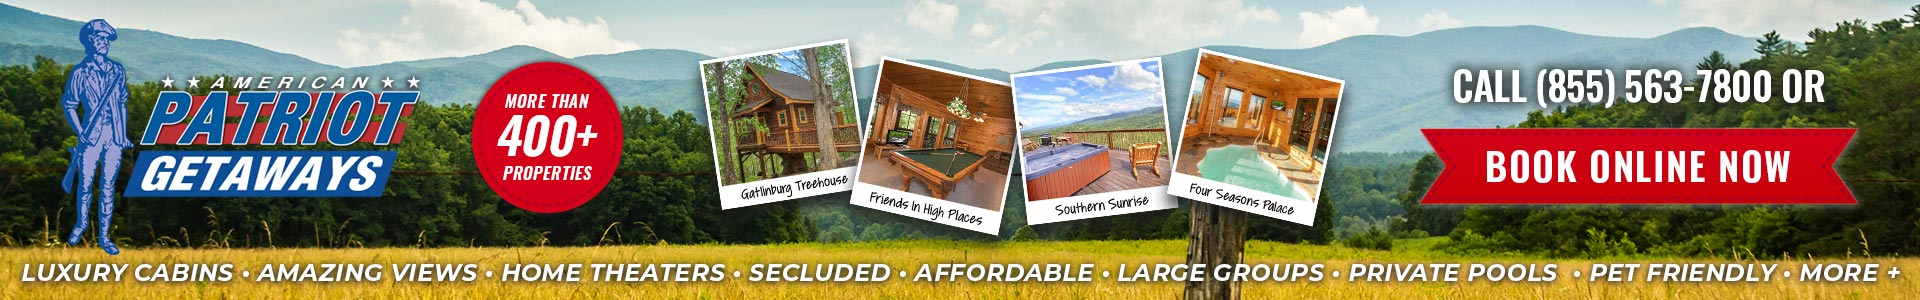 Ad - American Patriot Getaways: Over 400 cabins to choose from. Call (855) 563-7800 or click to book online.